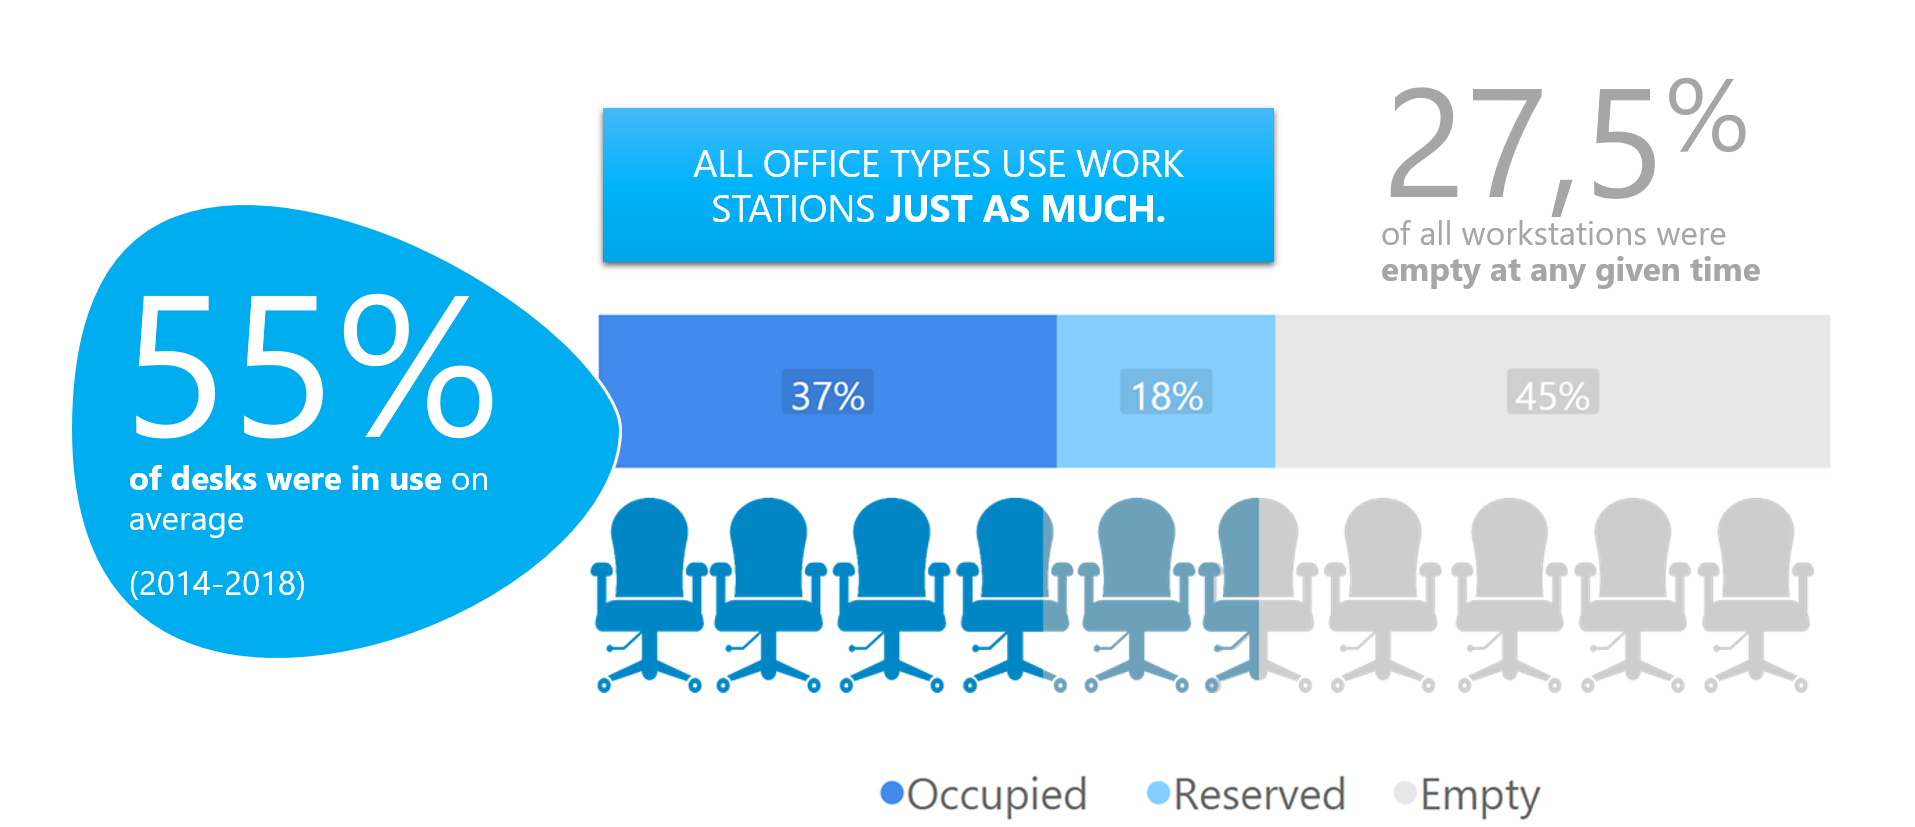 The study found that 55% of desks in all office types are in use on average.